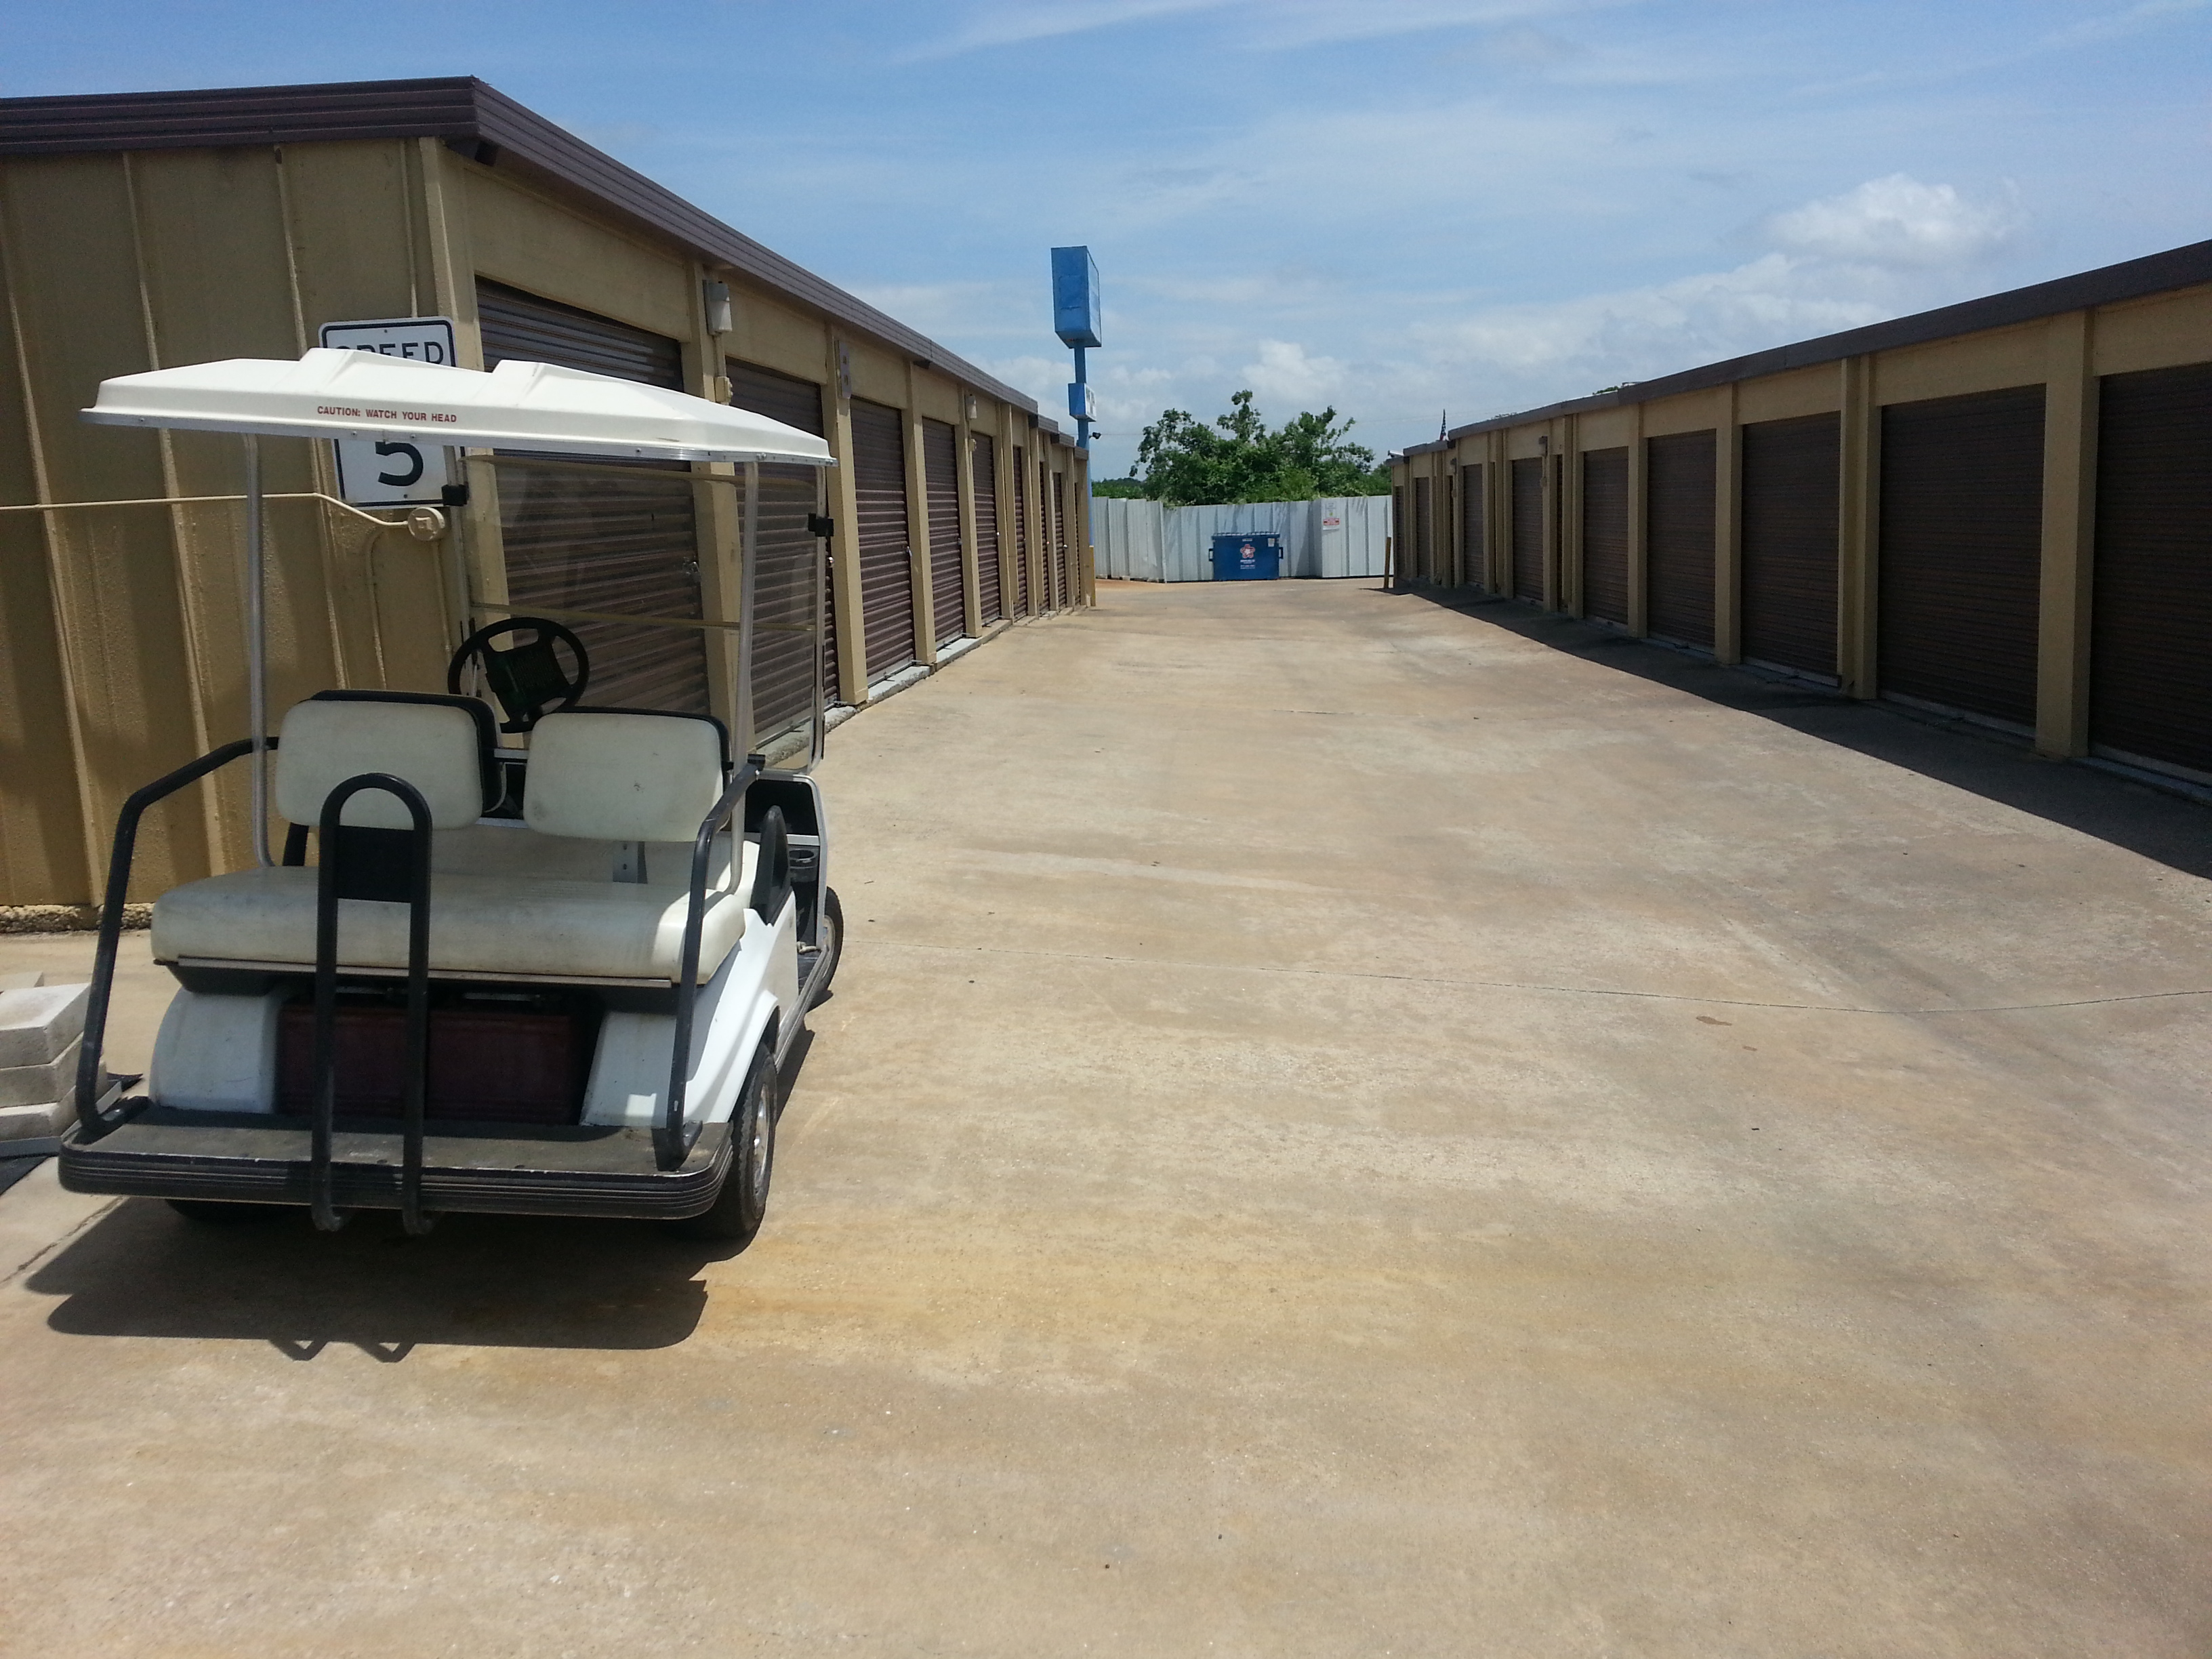 golf cart parked in front of storage buildings with drive up access